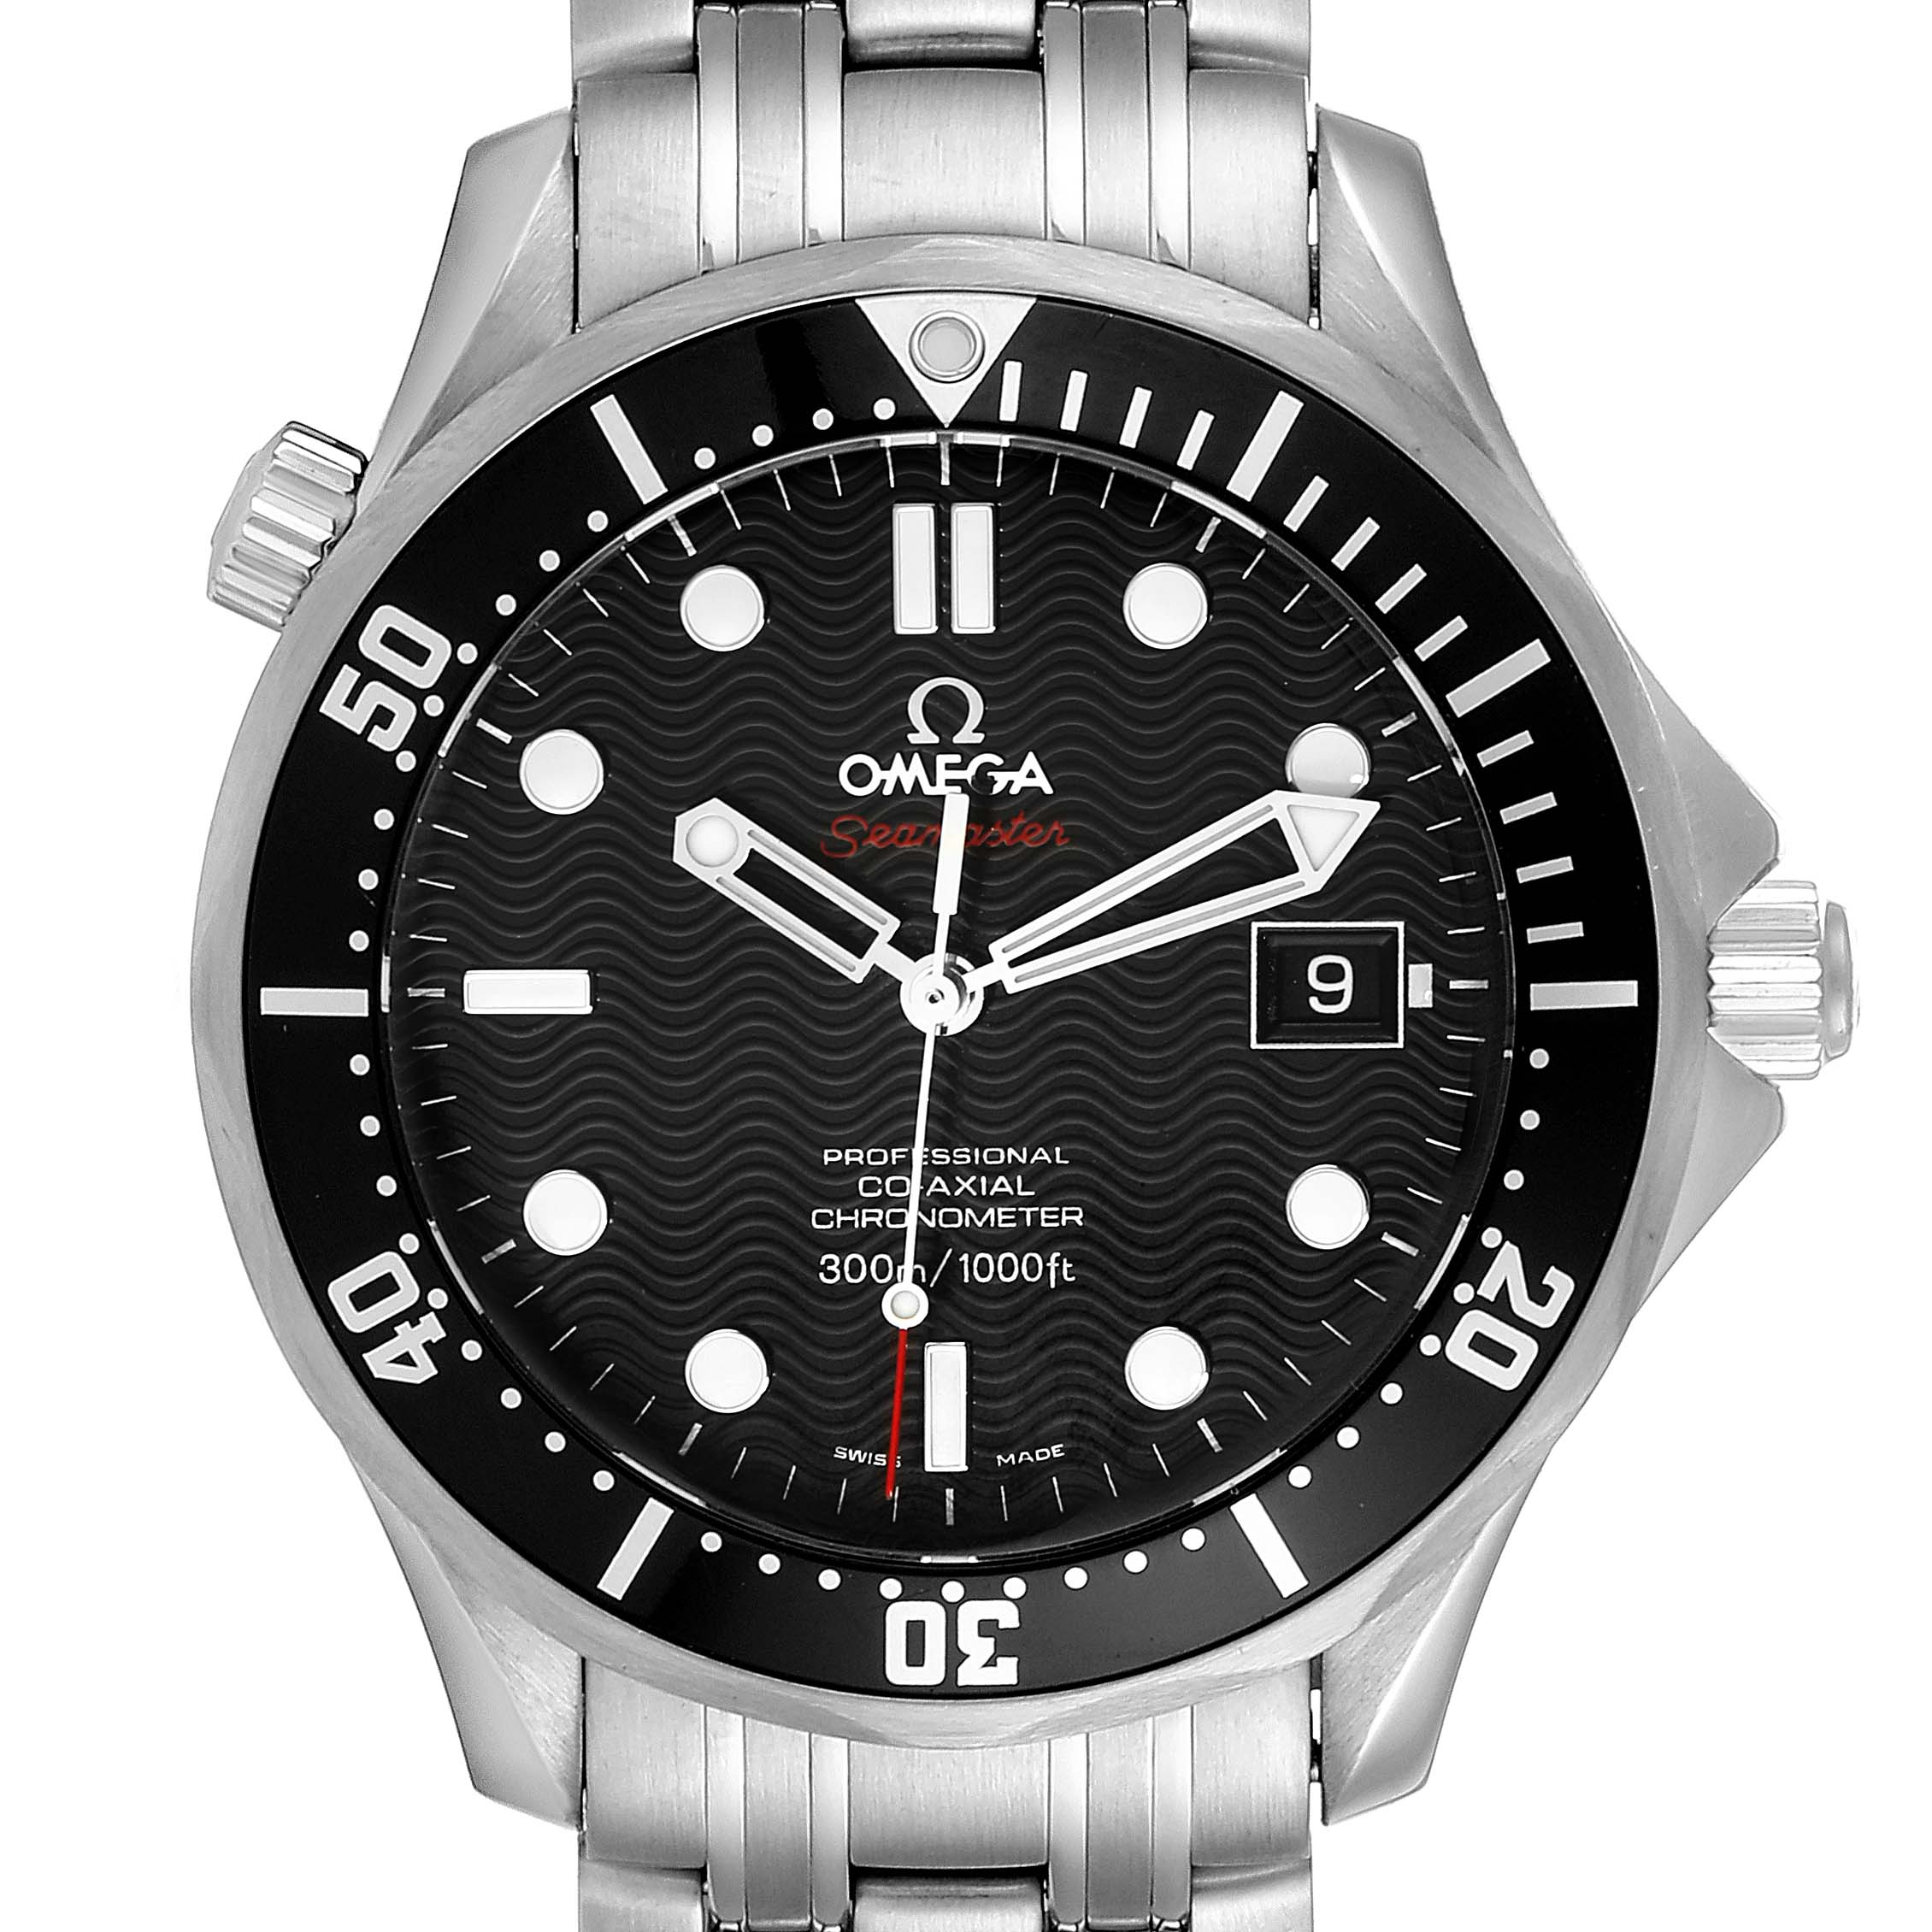 Omega Seamaster Black Dial Steel Mens Watch 212.30.41.20.01.002 SwissWatchExpo